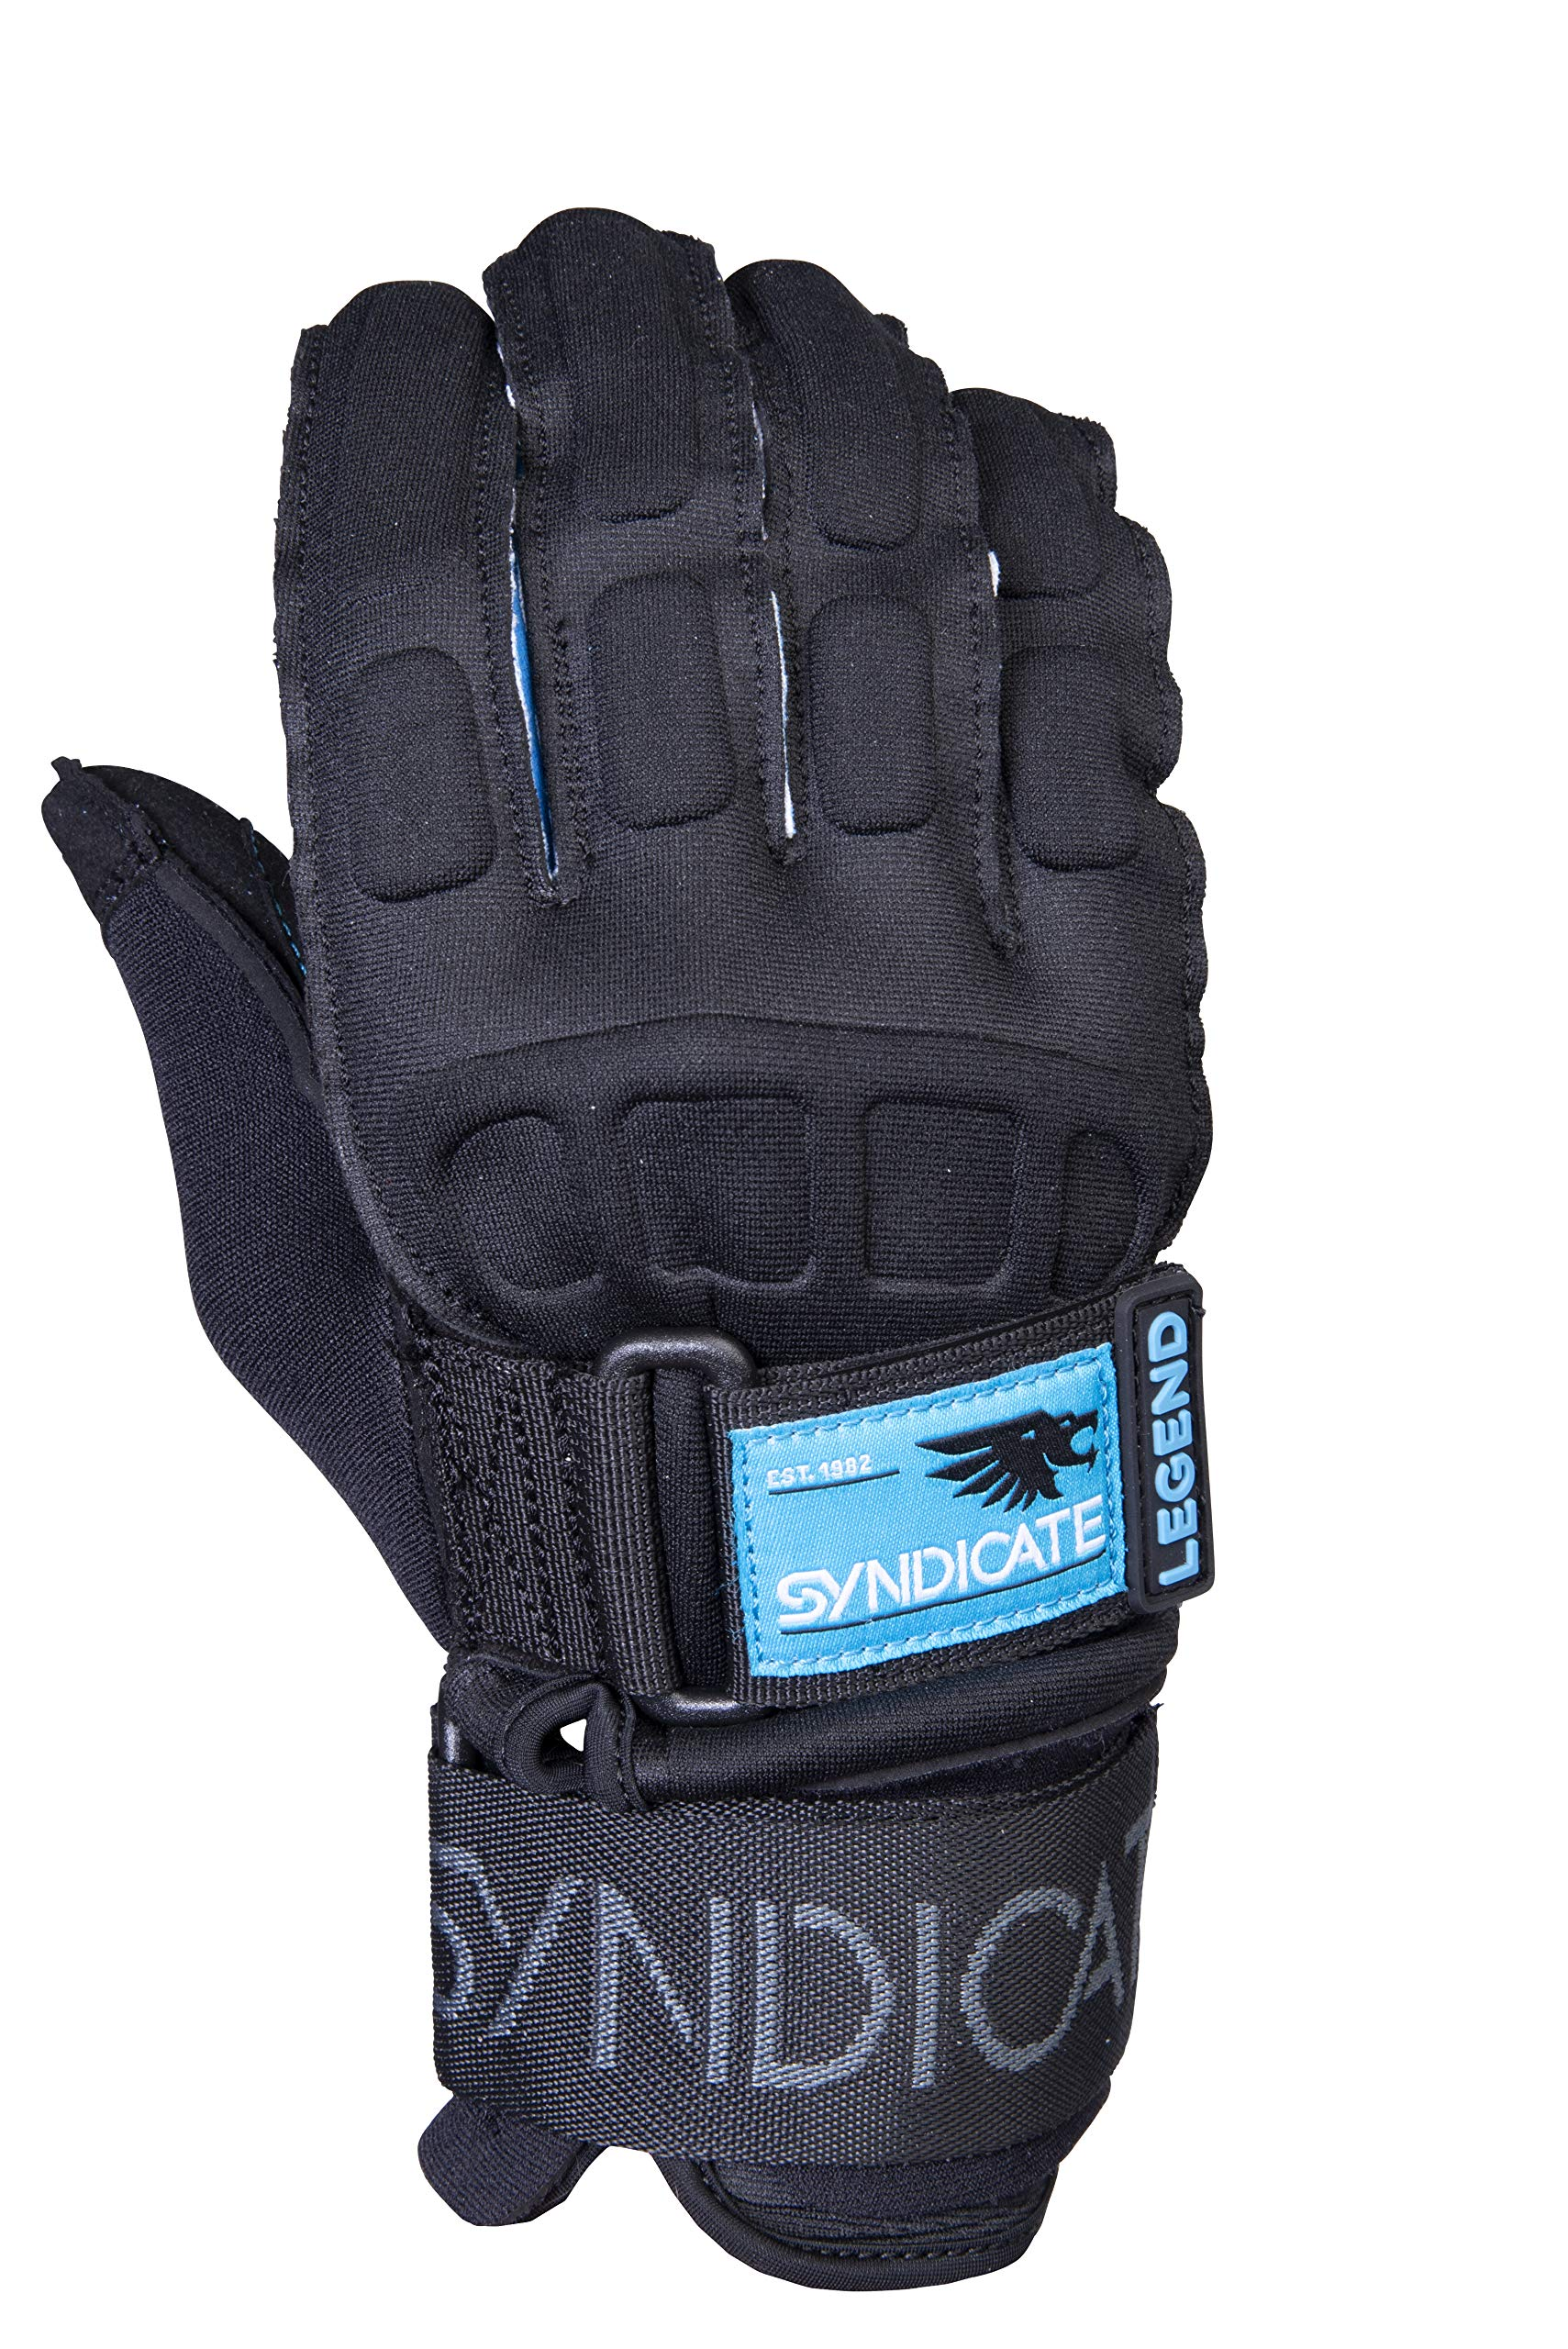 HO Sports Syndicate Legend Inside Out Gloves Ski Wakeboard Wakesurf L by HO Sports